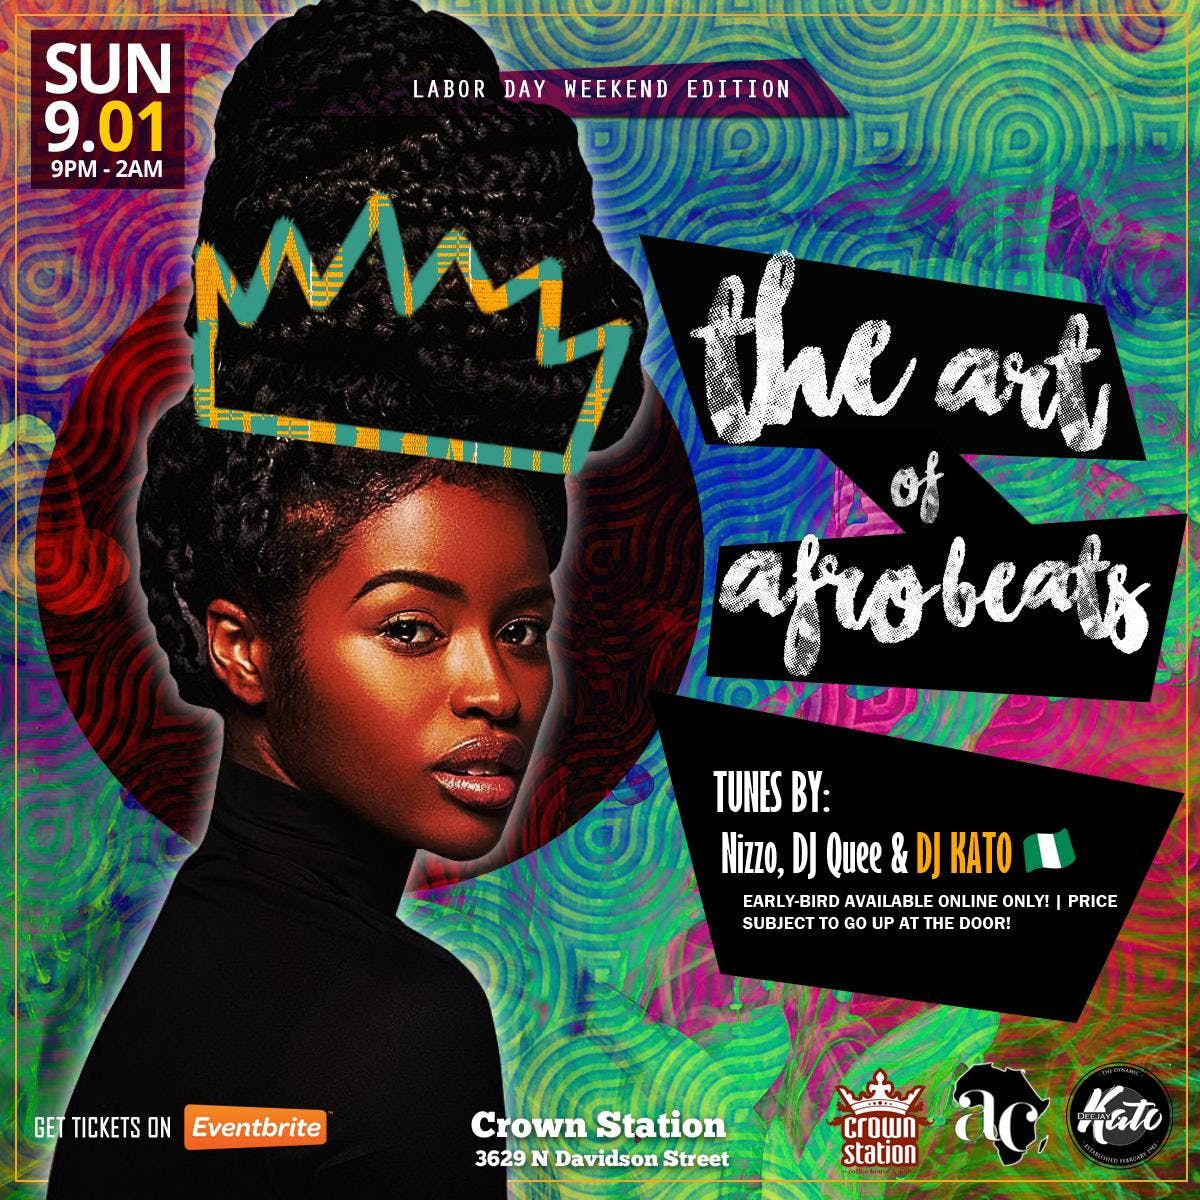 The Art of Afrobeats Charlotte, Vol.2: Labor Day Weekend 2019 @Crown Station